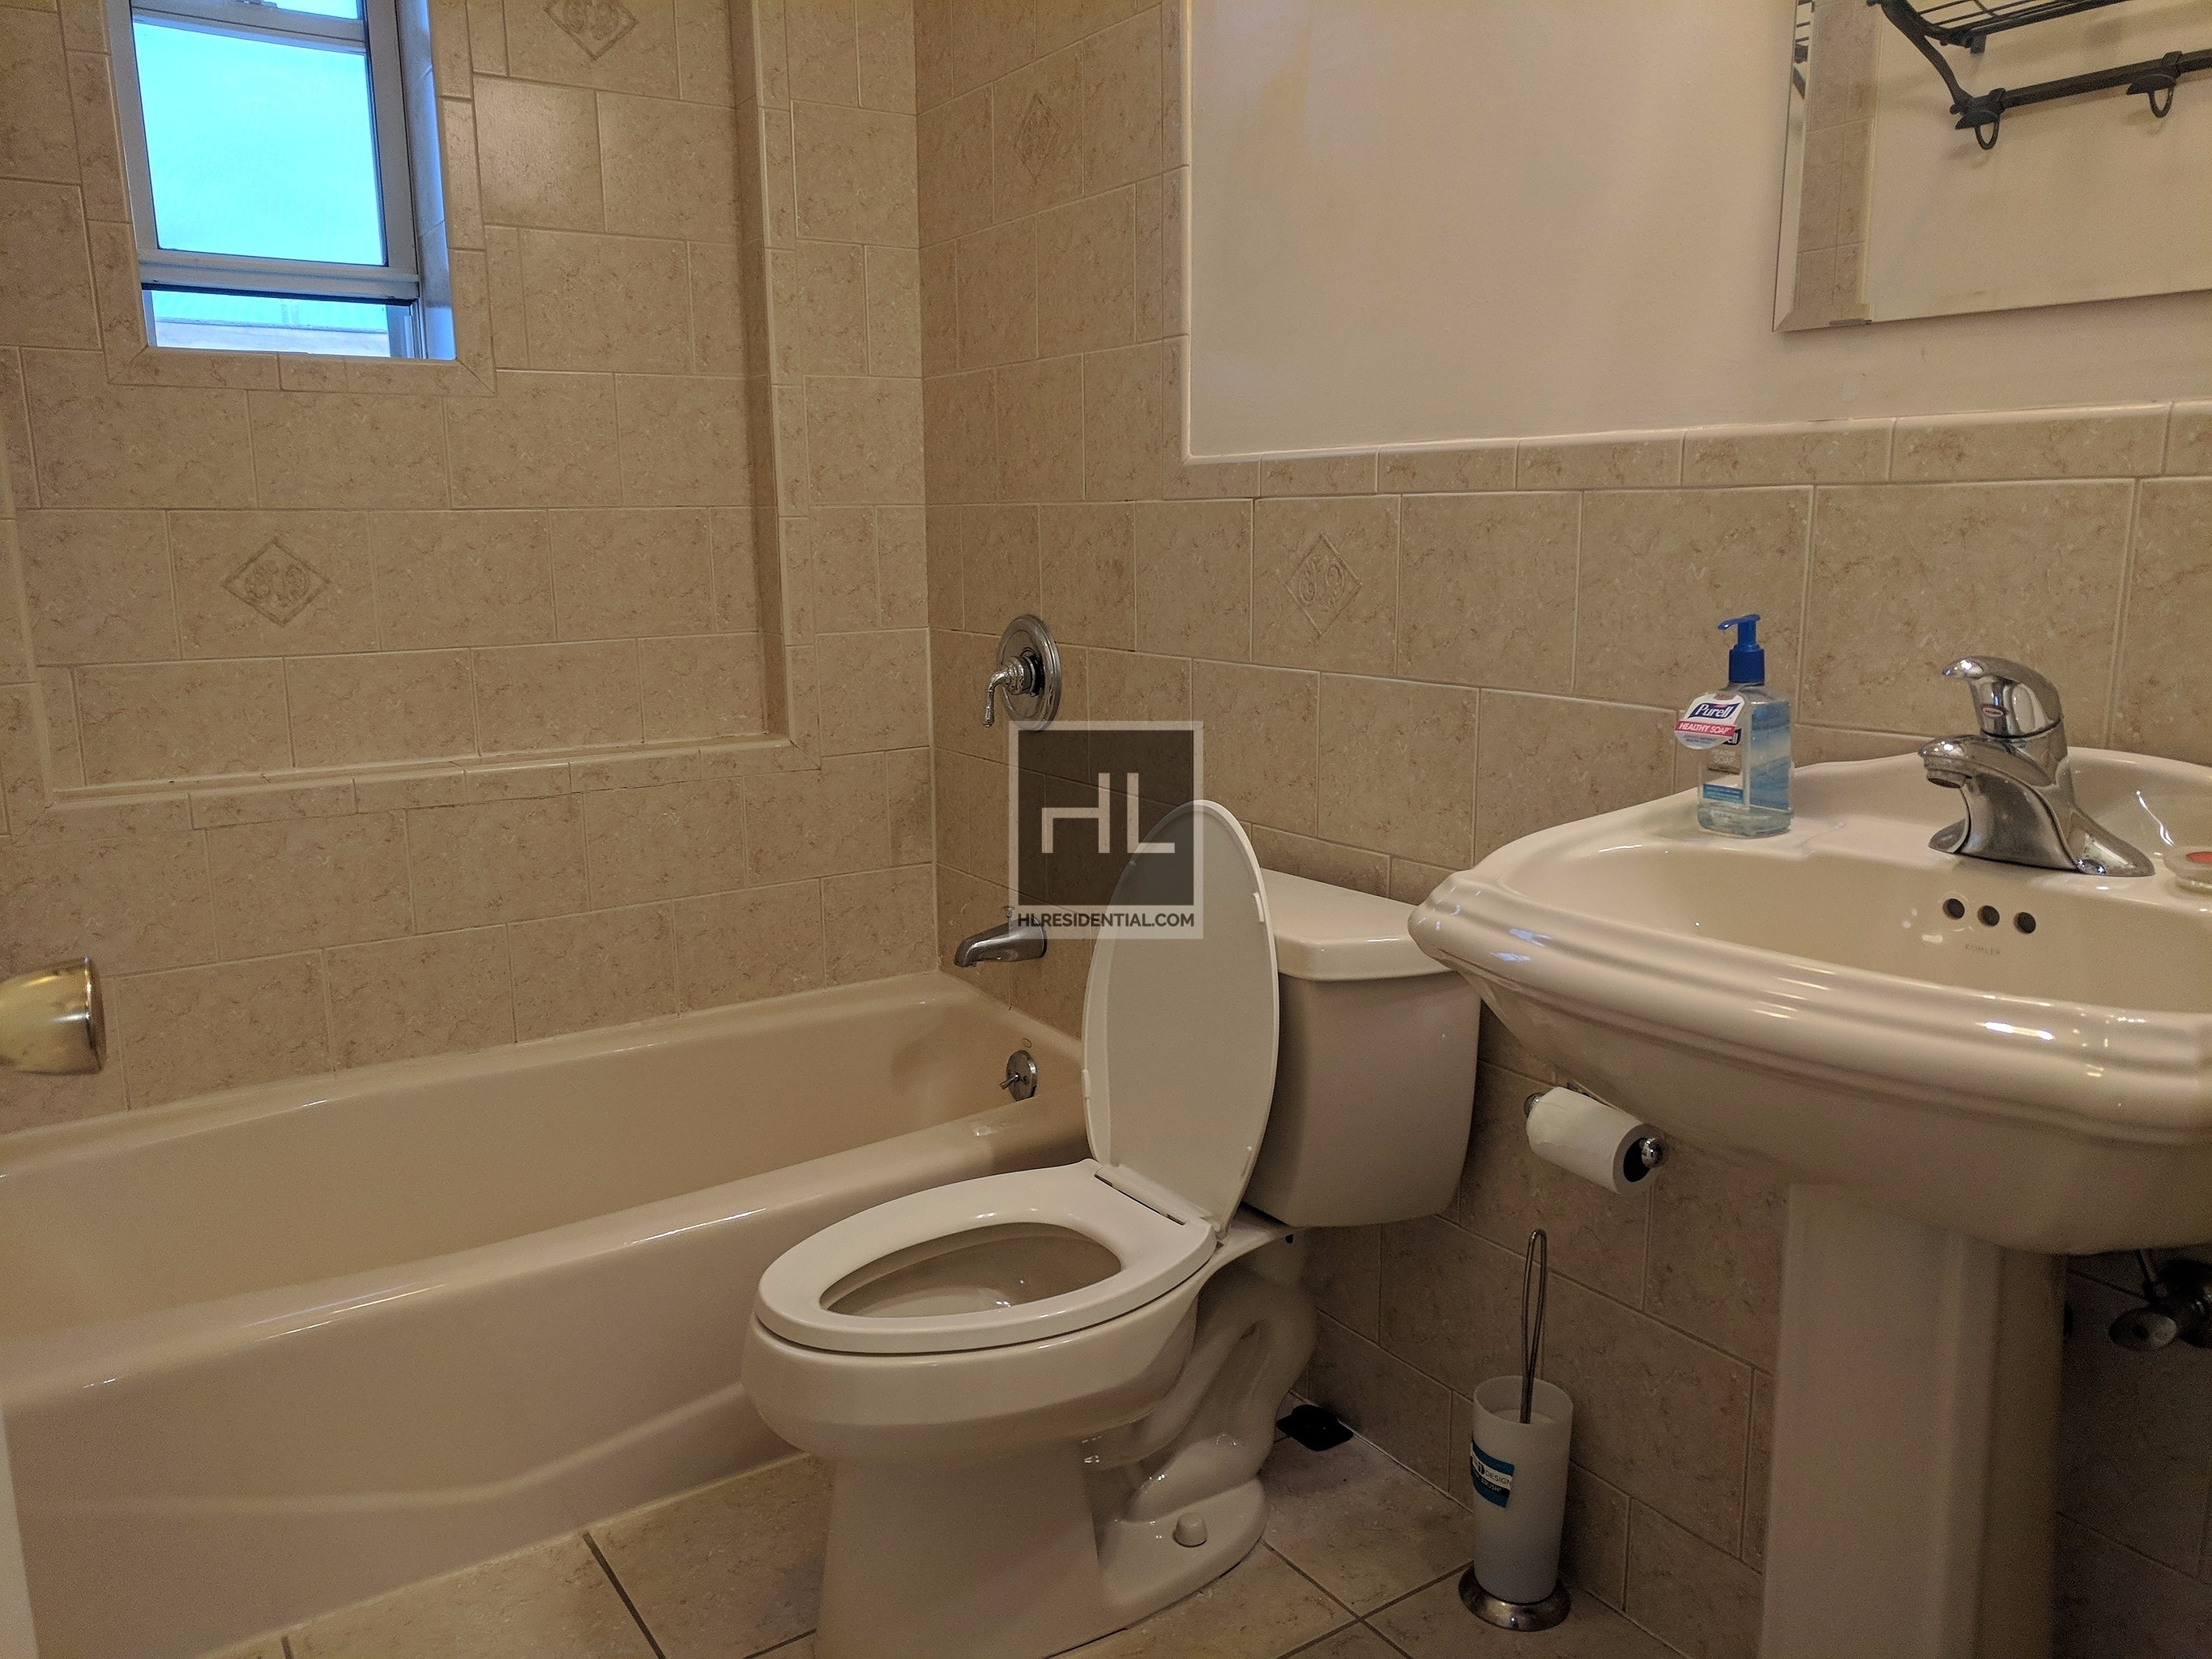 Newly Renovated 2 Bedroom with 1 5 Bath  Separate Kitchen  Stainless Steel  Appliances Including Dishwasher   Rental   Highline Residential. Newly Renovated 2 Bedroom with 1 5 Bath  Separate Kitchen